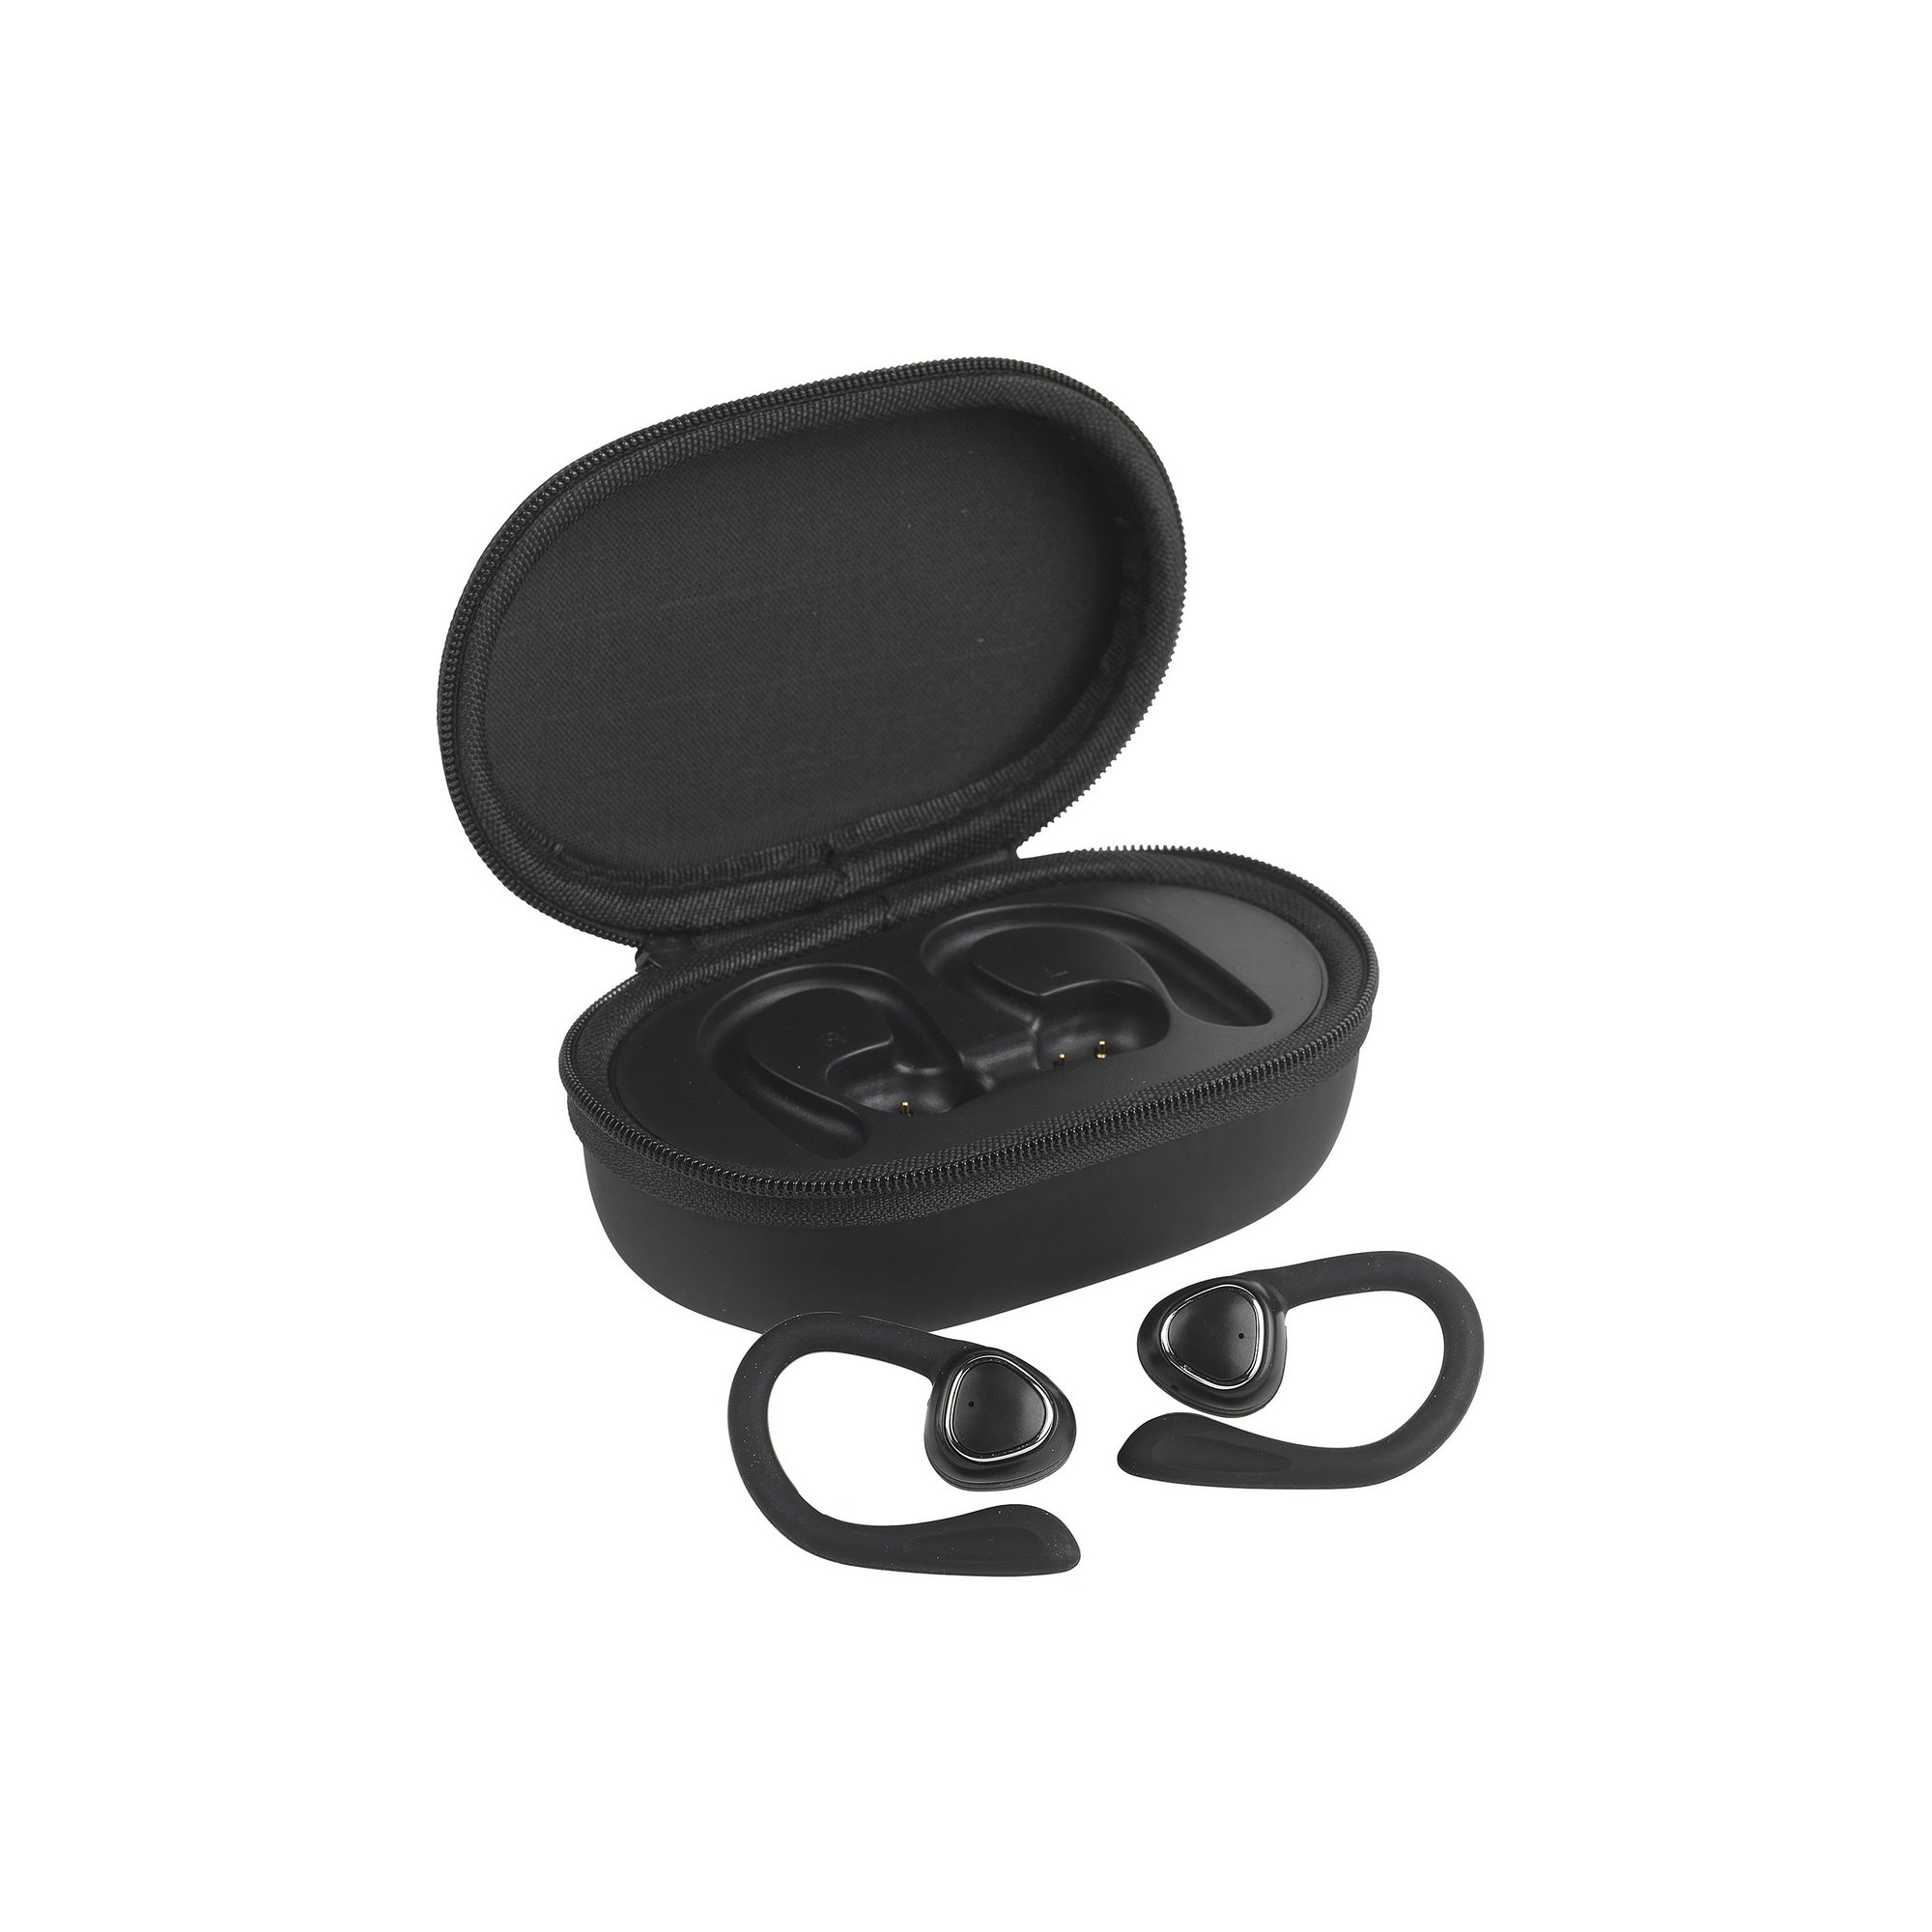 Image of Intempo Active TWS Earbuds with Charging Case